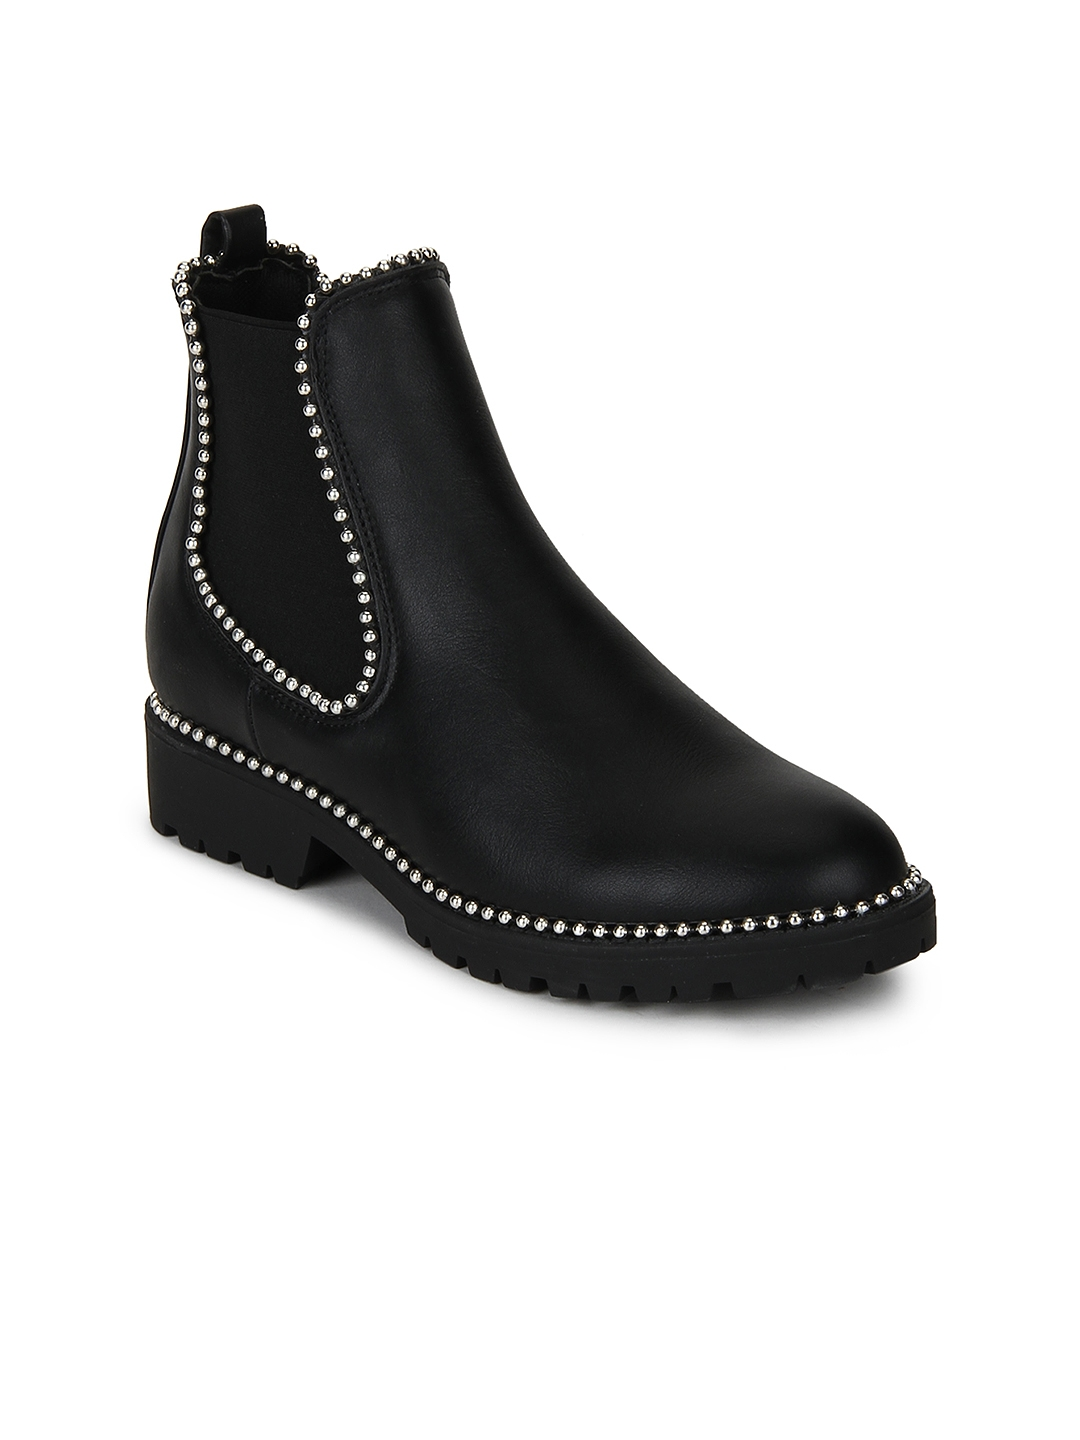 31cdff85f70 Buy Truffle Collection Women Black Solid Heeled Boots With ...